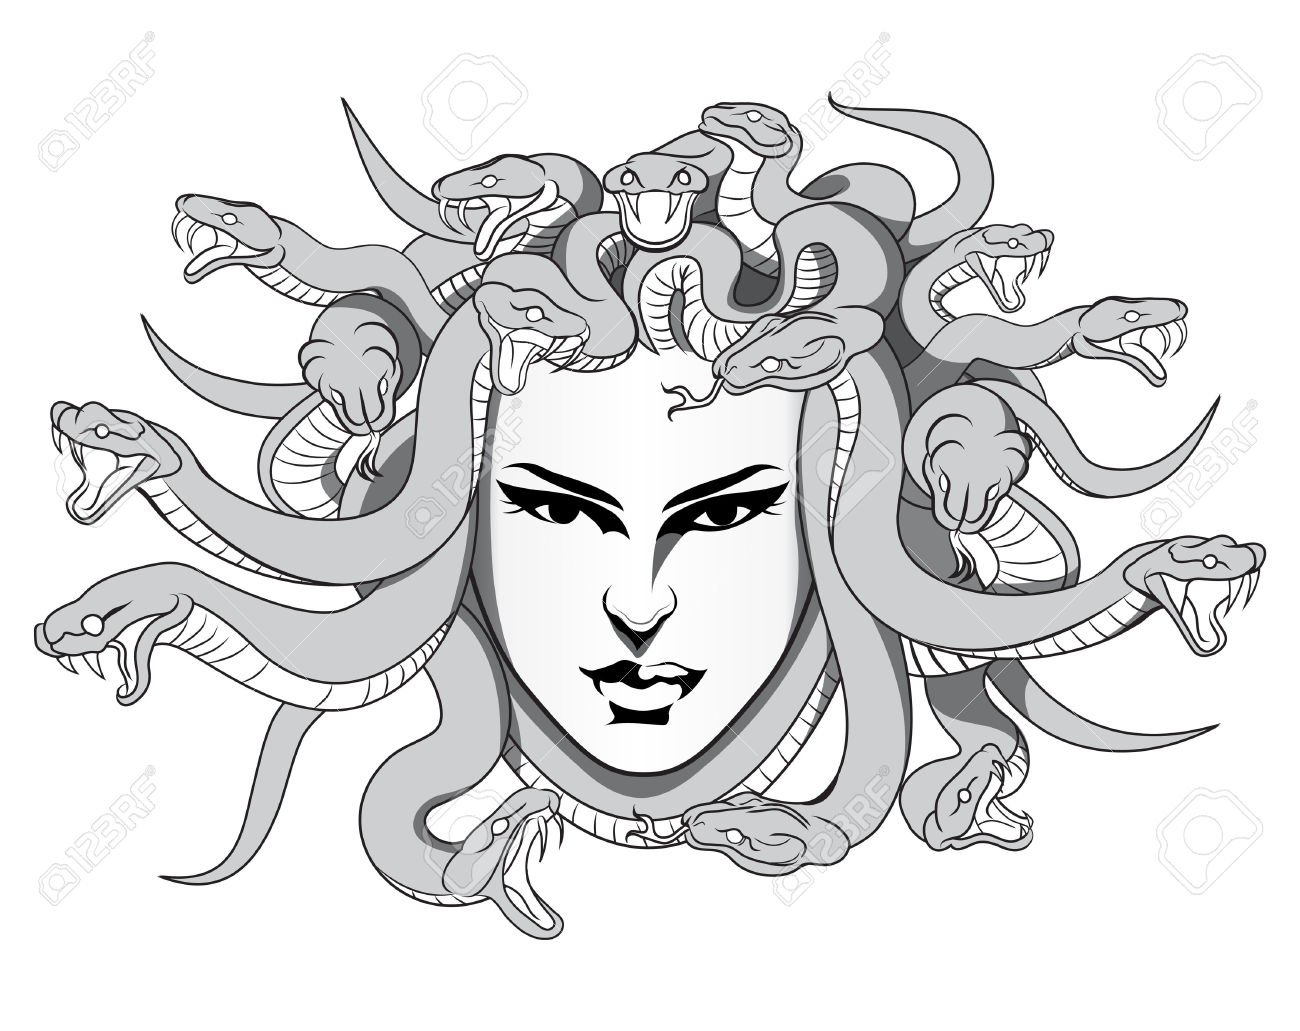 29670287-medusa-with-poison-snakes--Stock-Vector-medusa-greek-tattoo